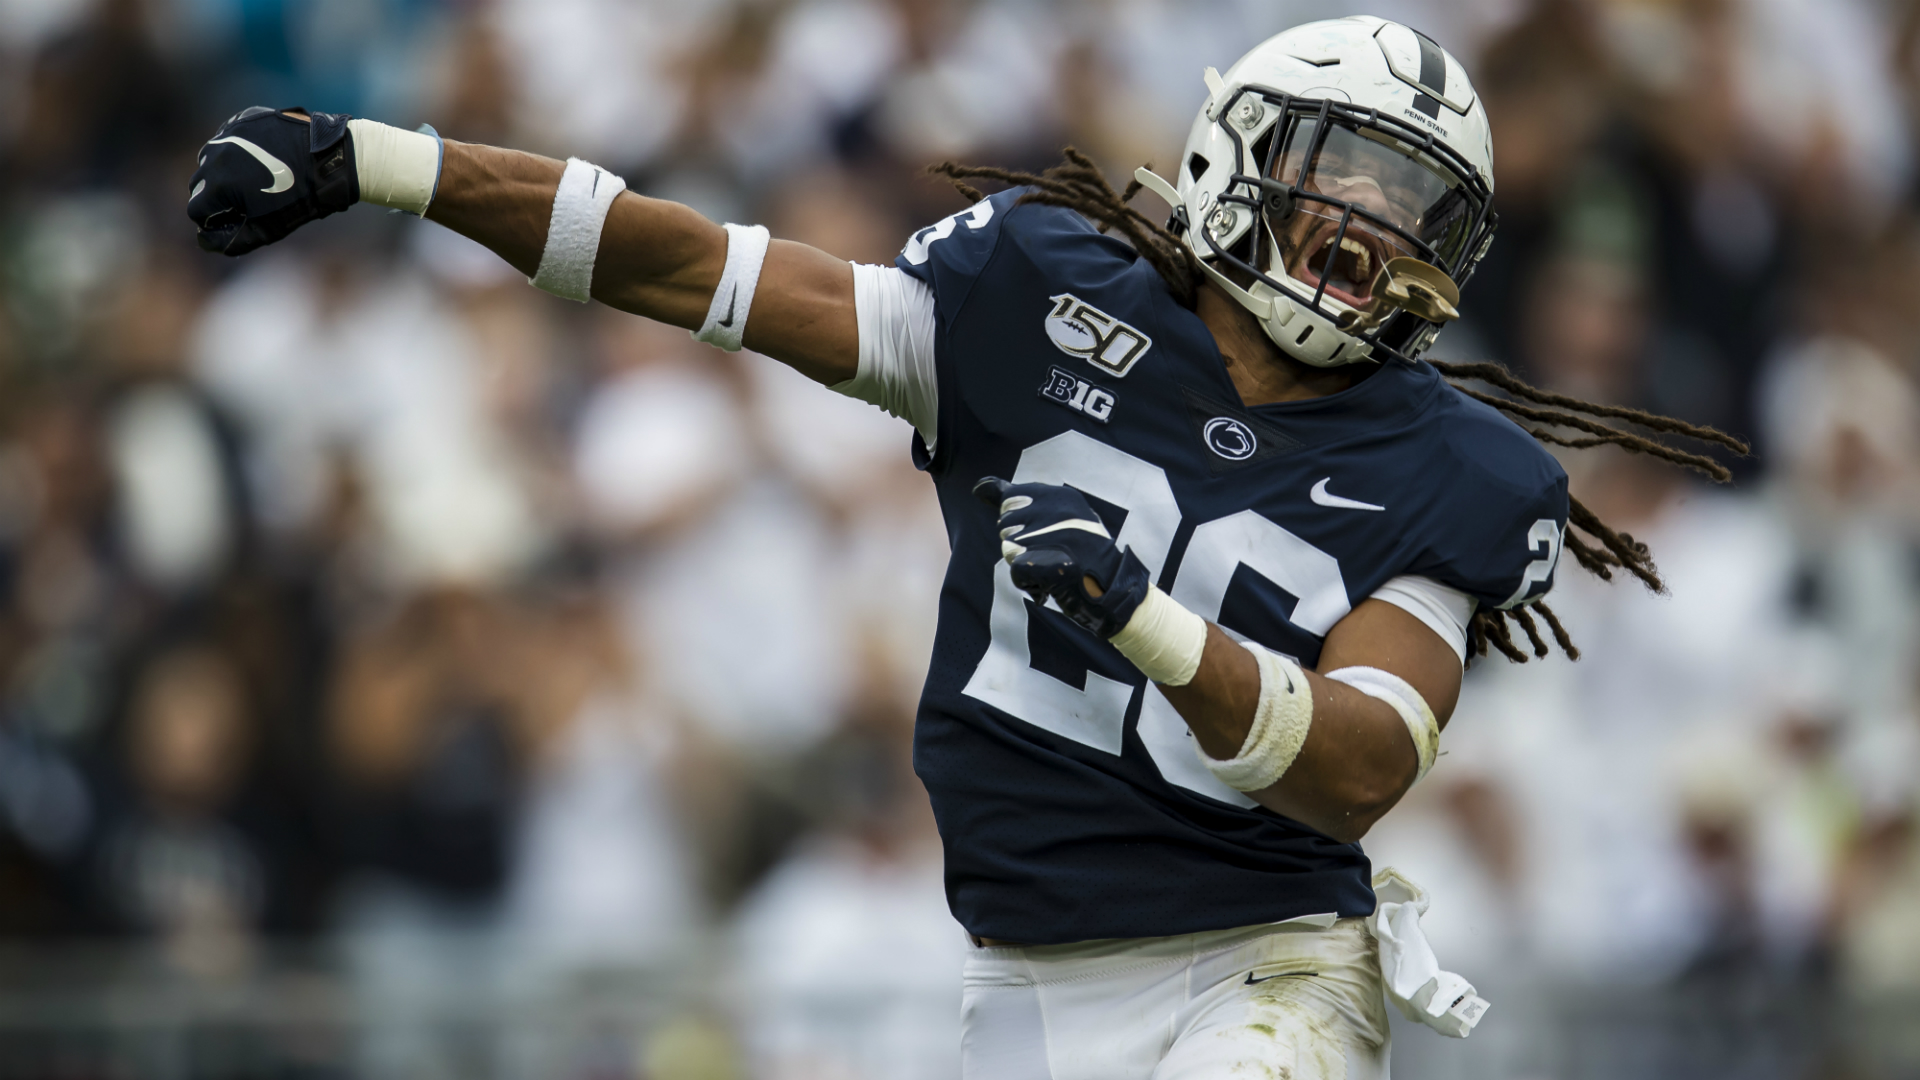 'Chains, tattoos and dreads': Penn State players respond to fan letter with warmup shirt